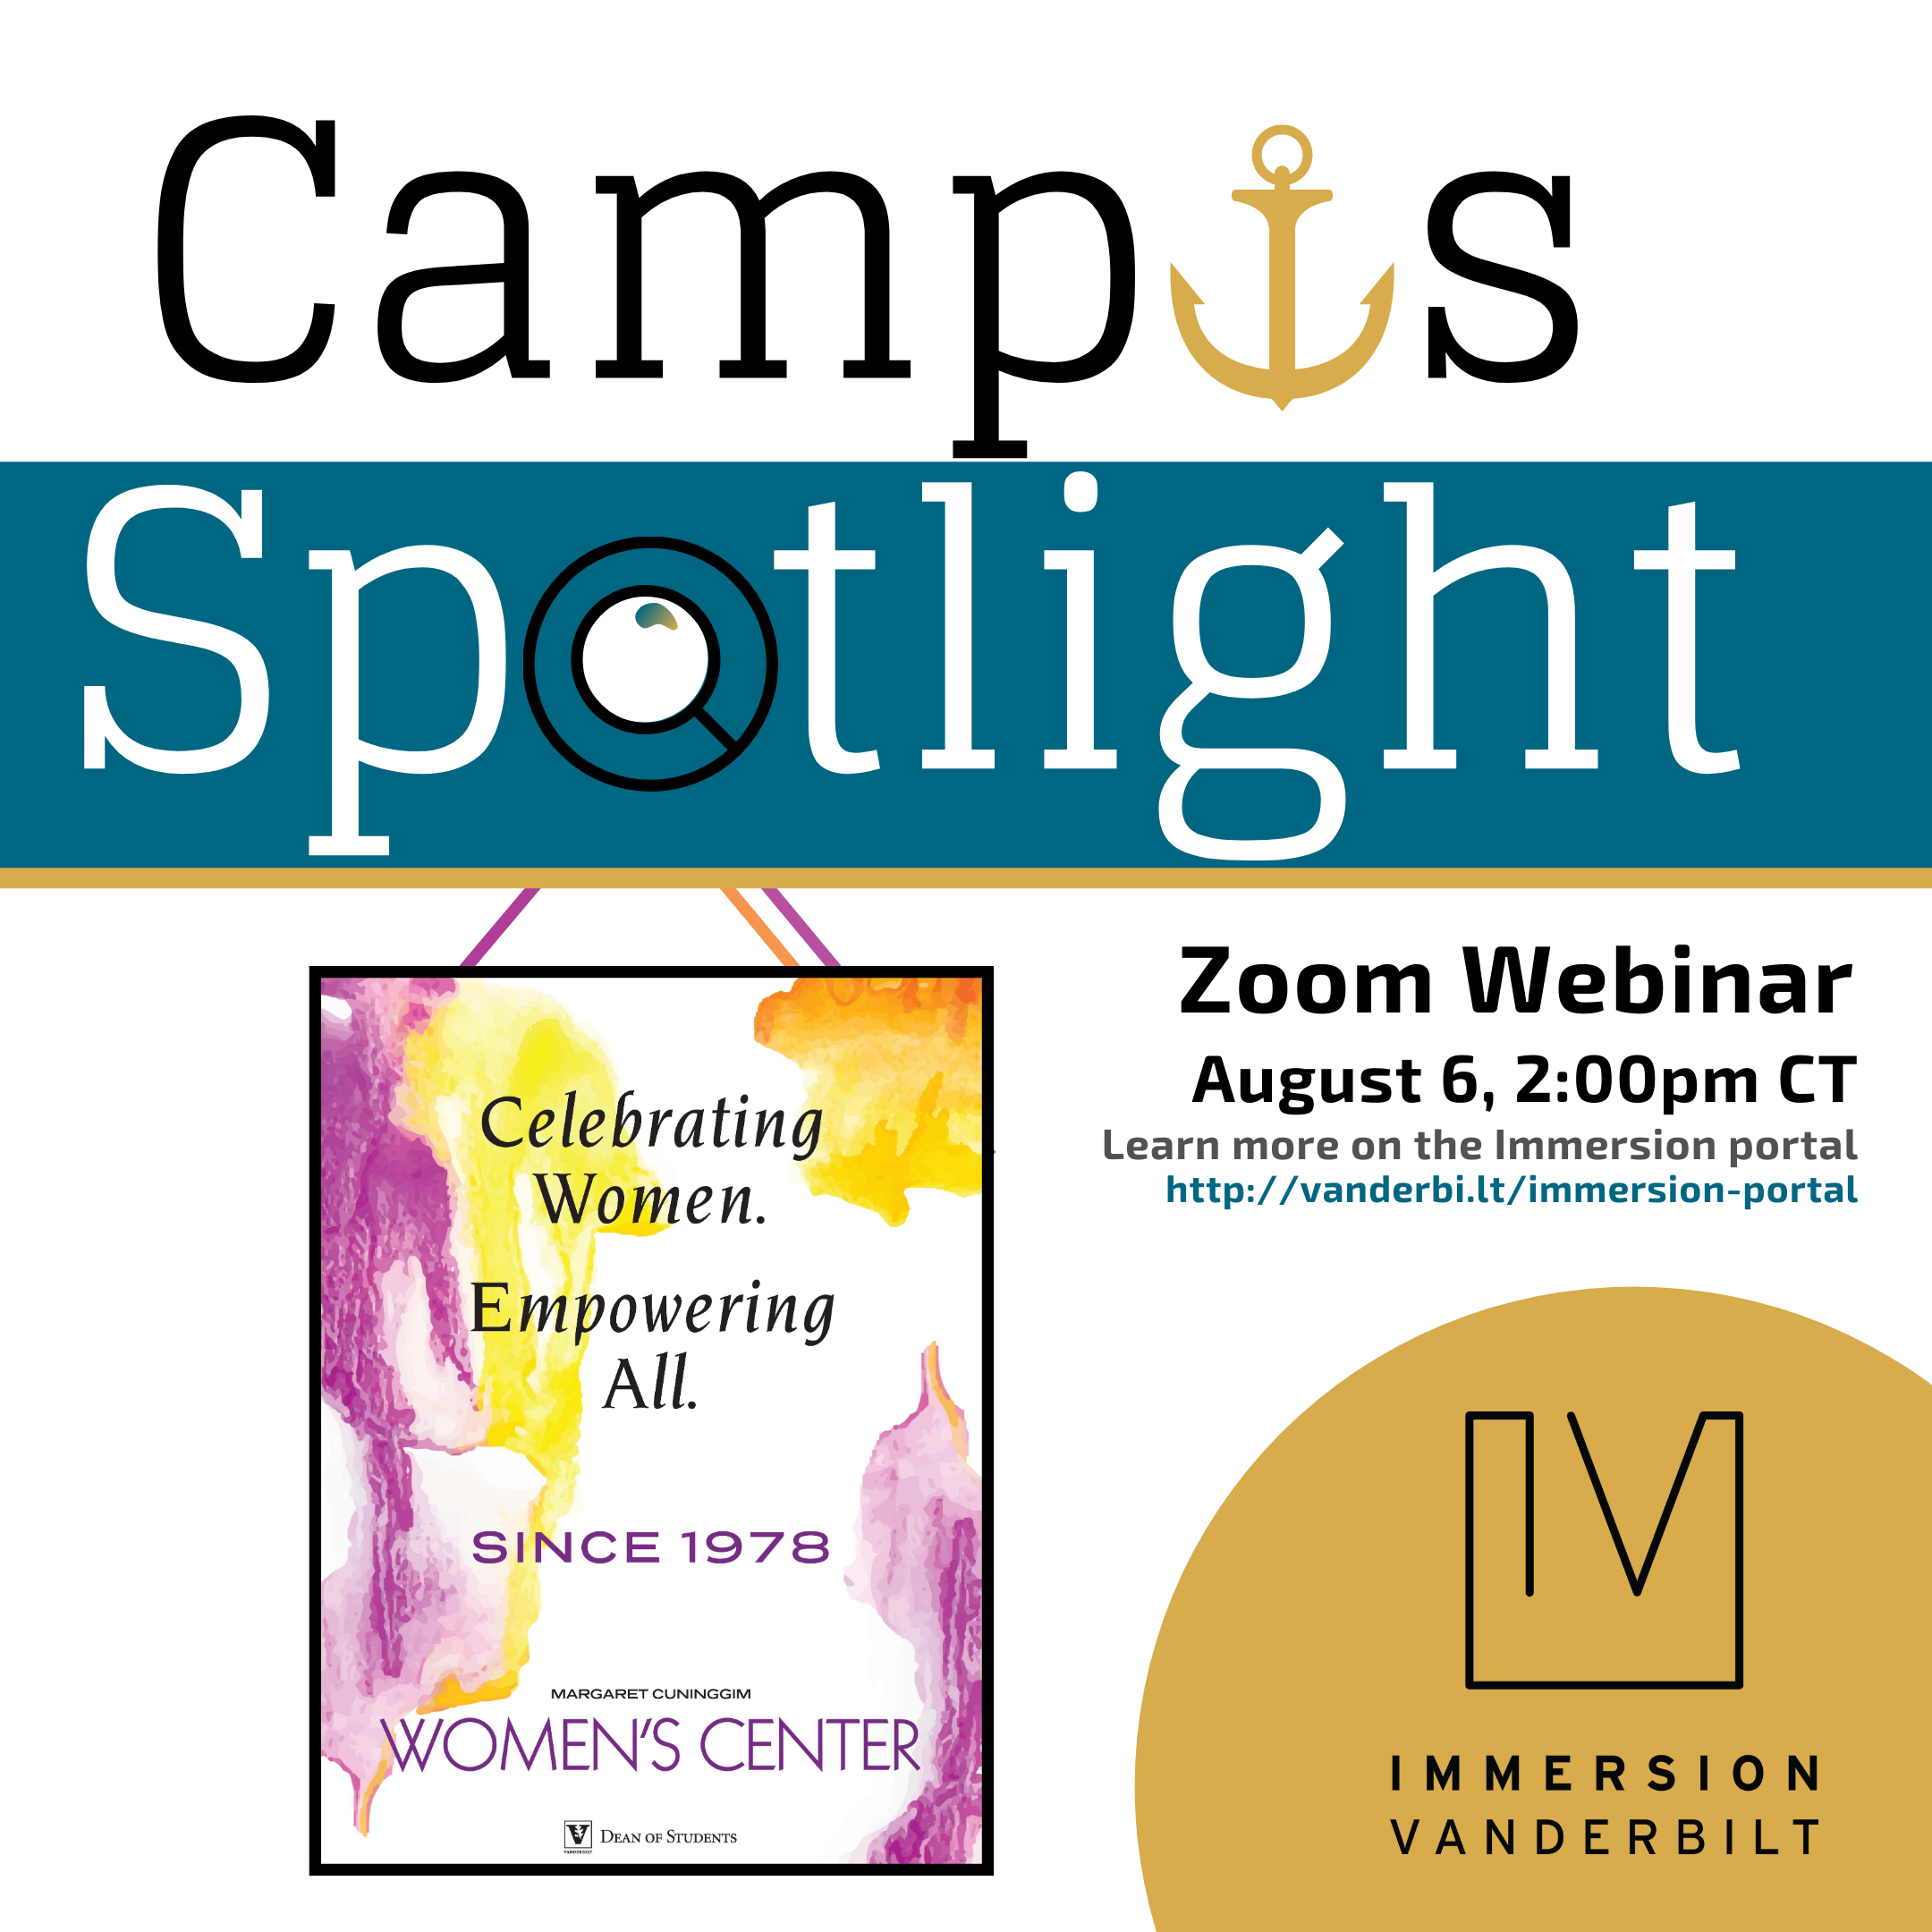 Graphic advertising a Zoom webinar with the Margaret Cuninggim Women's Center, depicting a magnifying glass spotlighting the center's logo